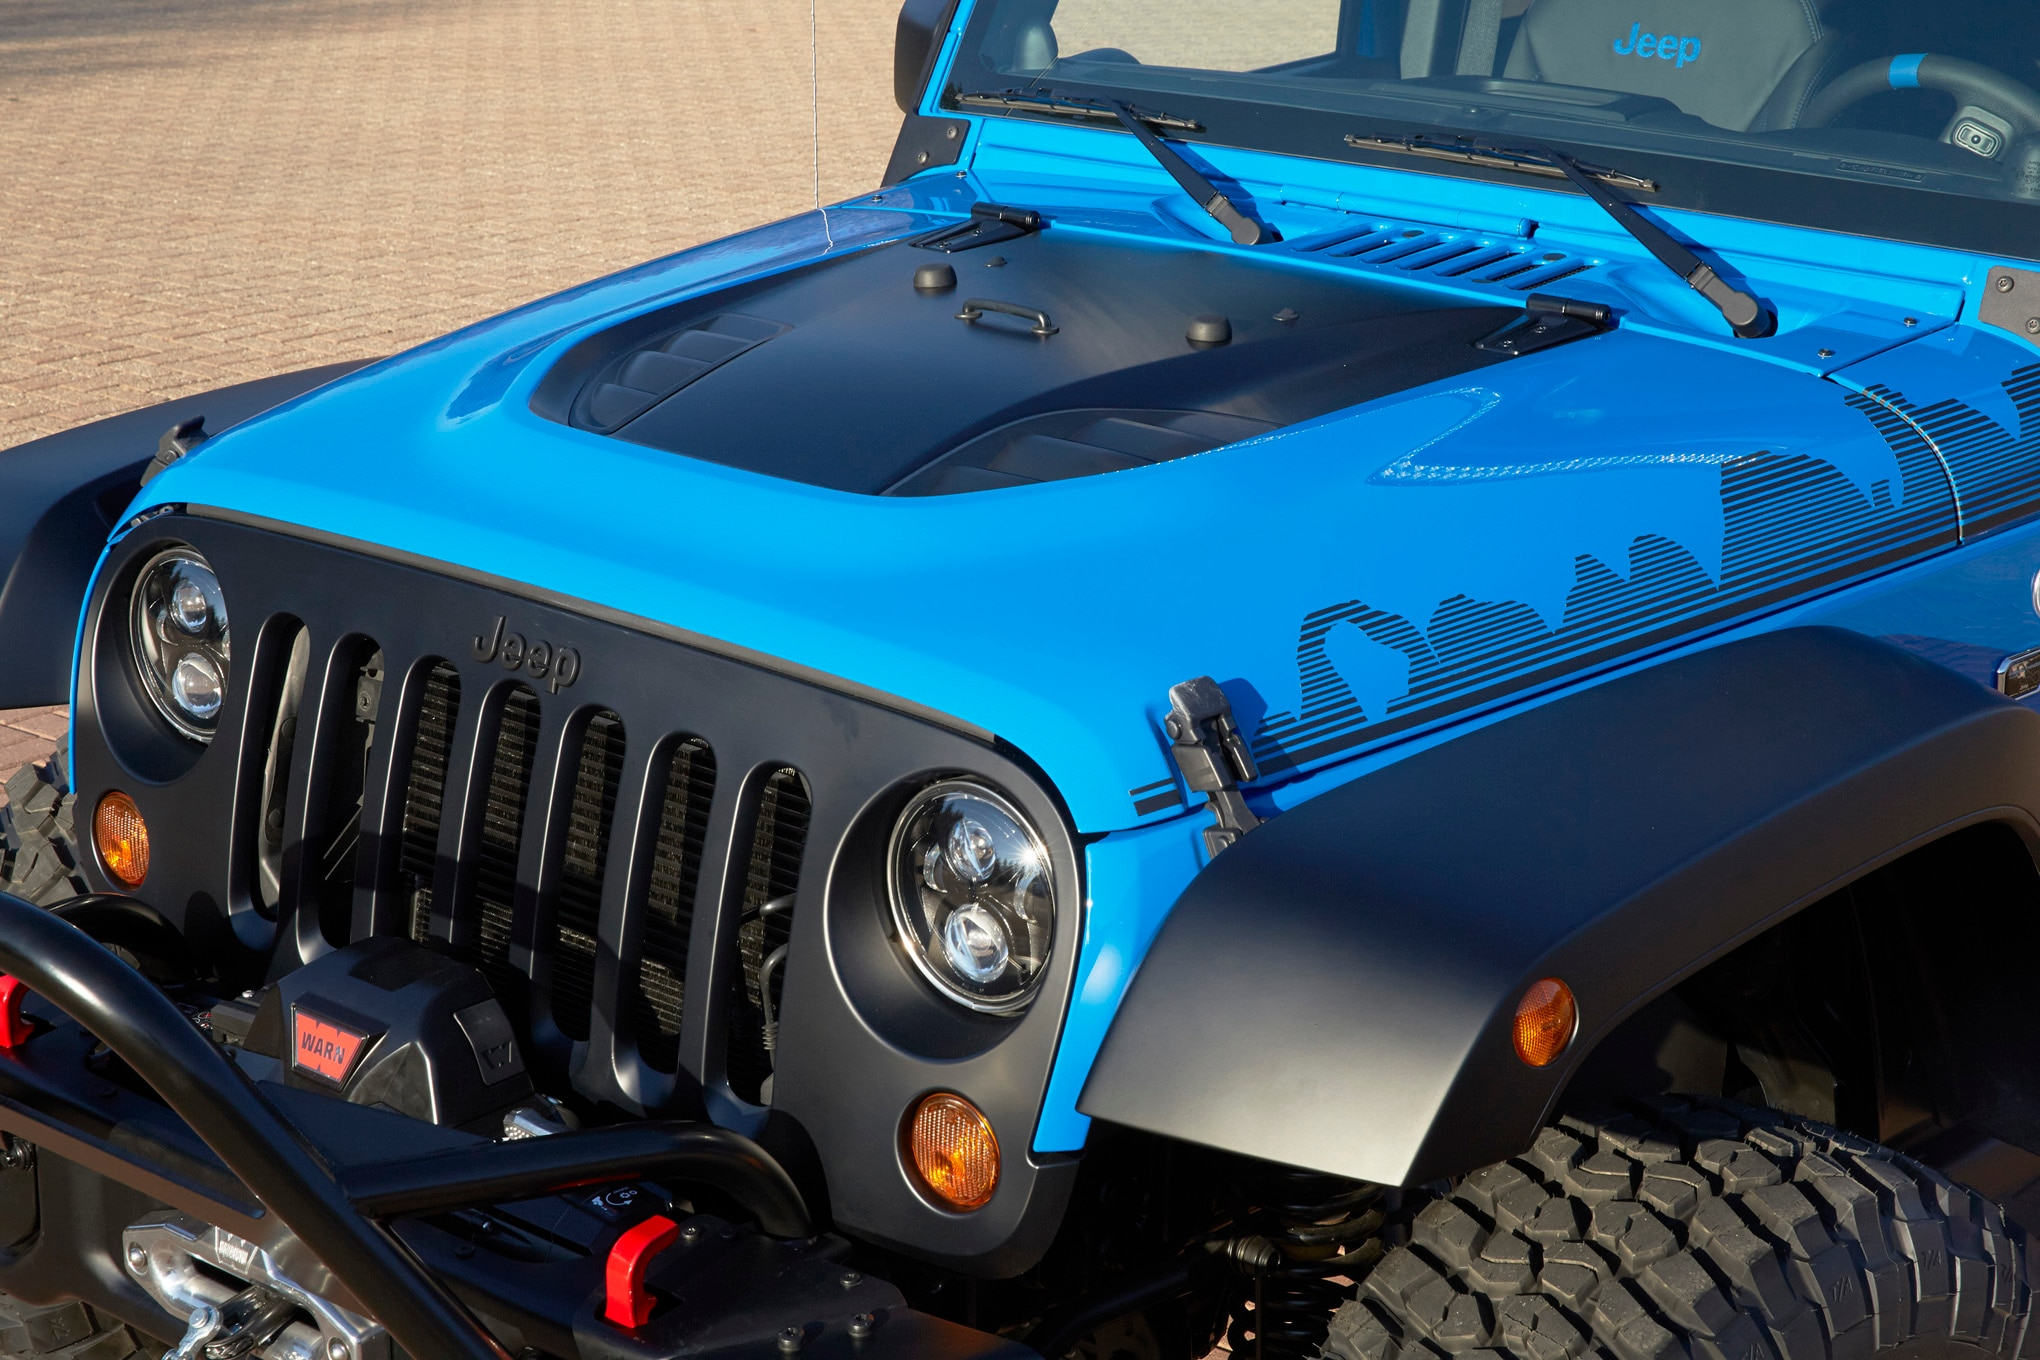 Jeep Wrangler Maximum Performance Concept front end